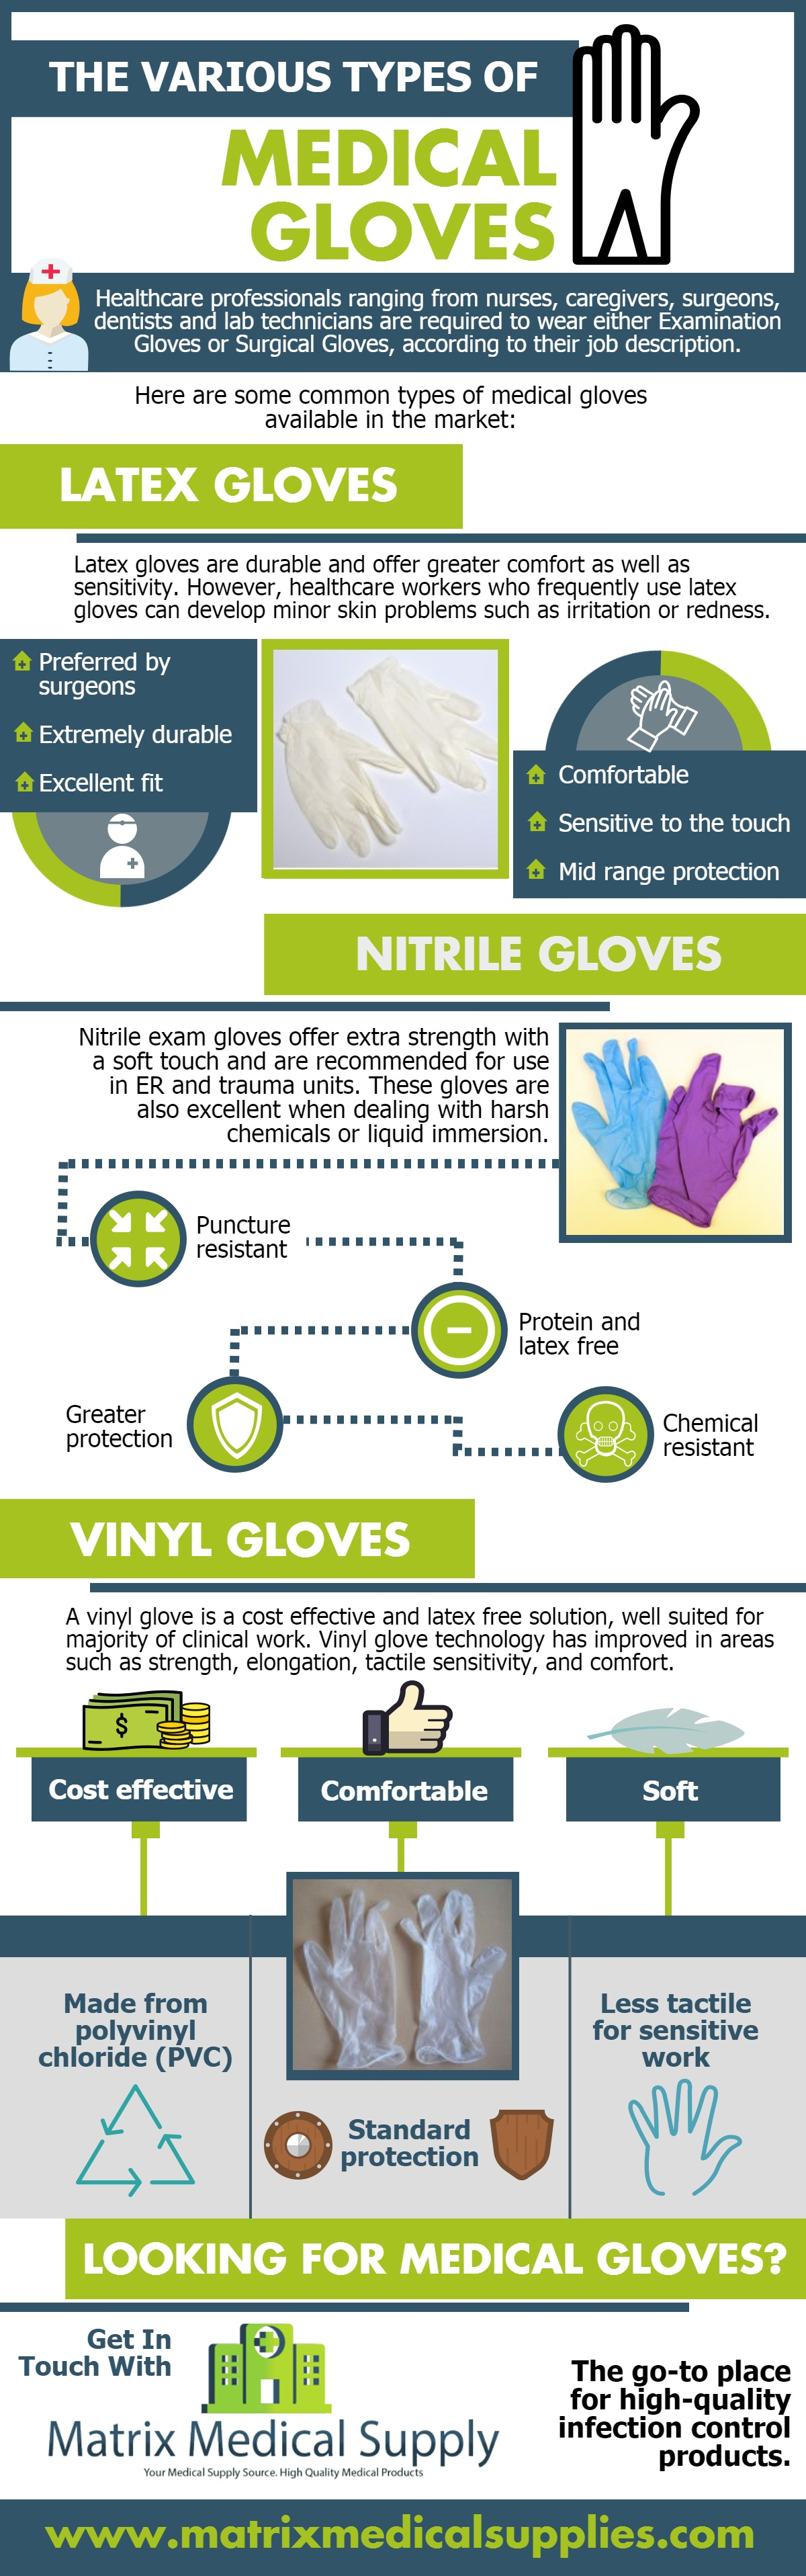 The Various Types of Medical Gloves